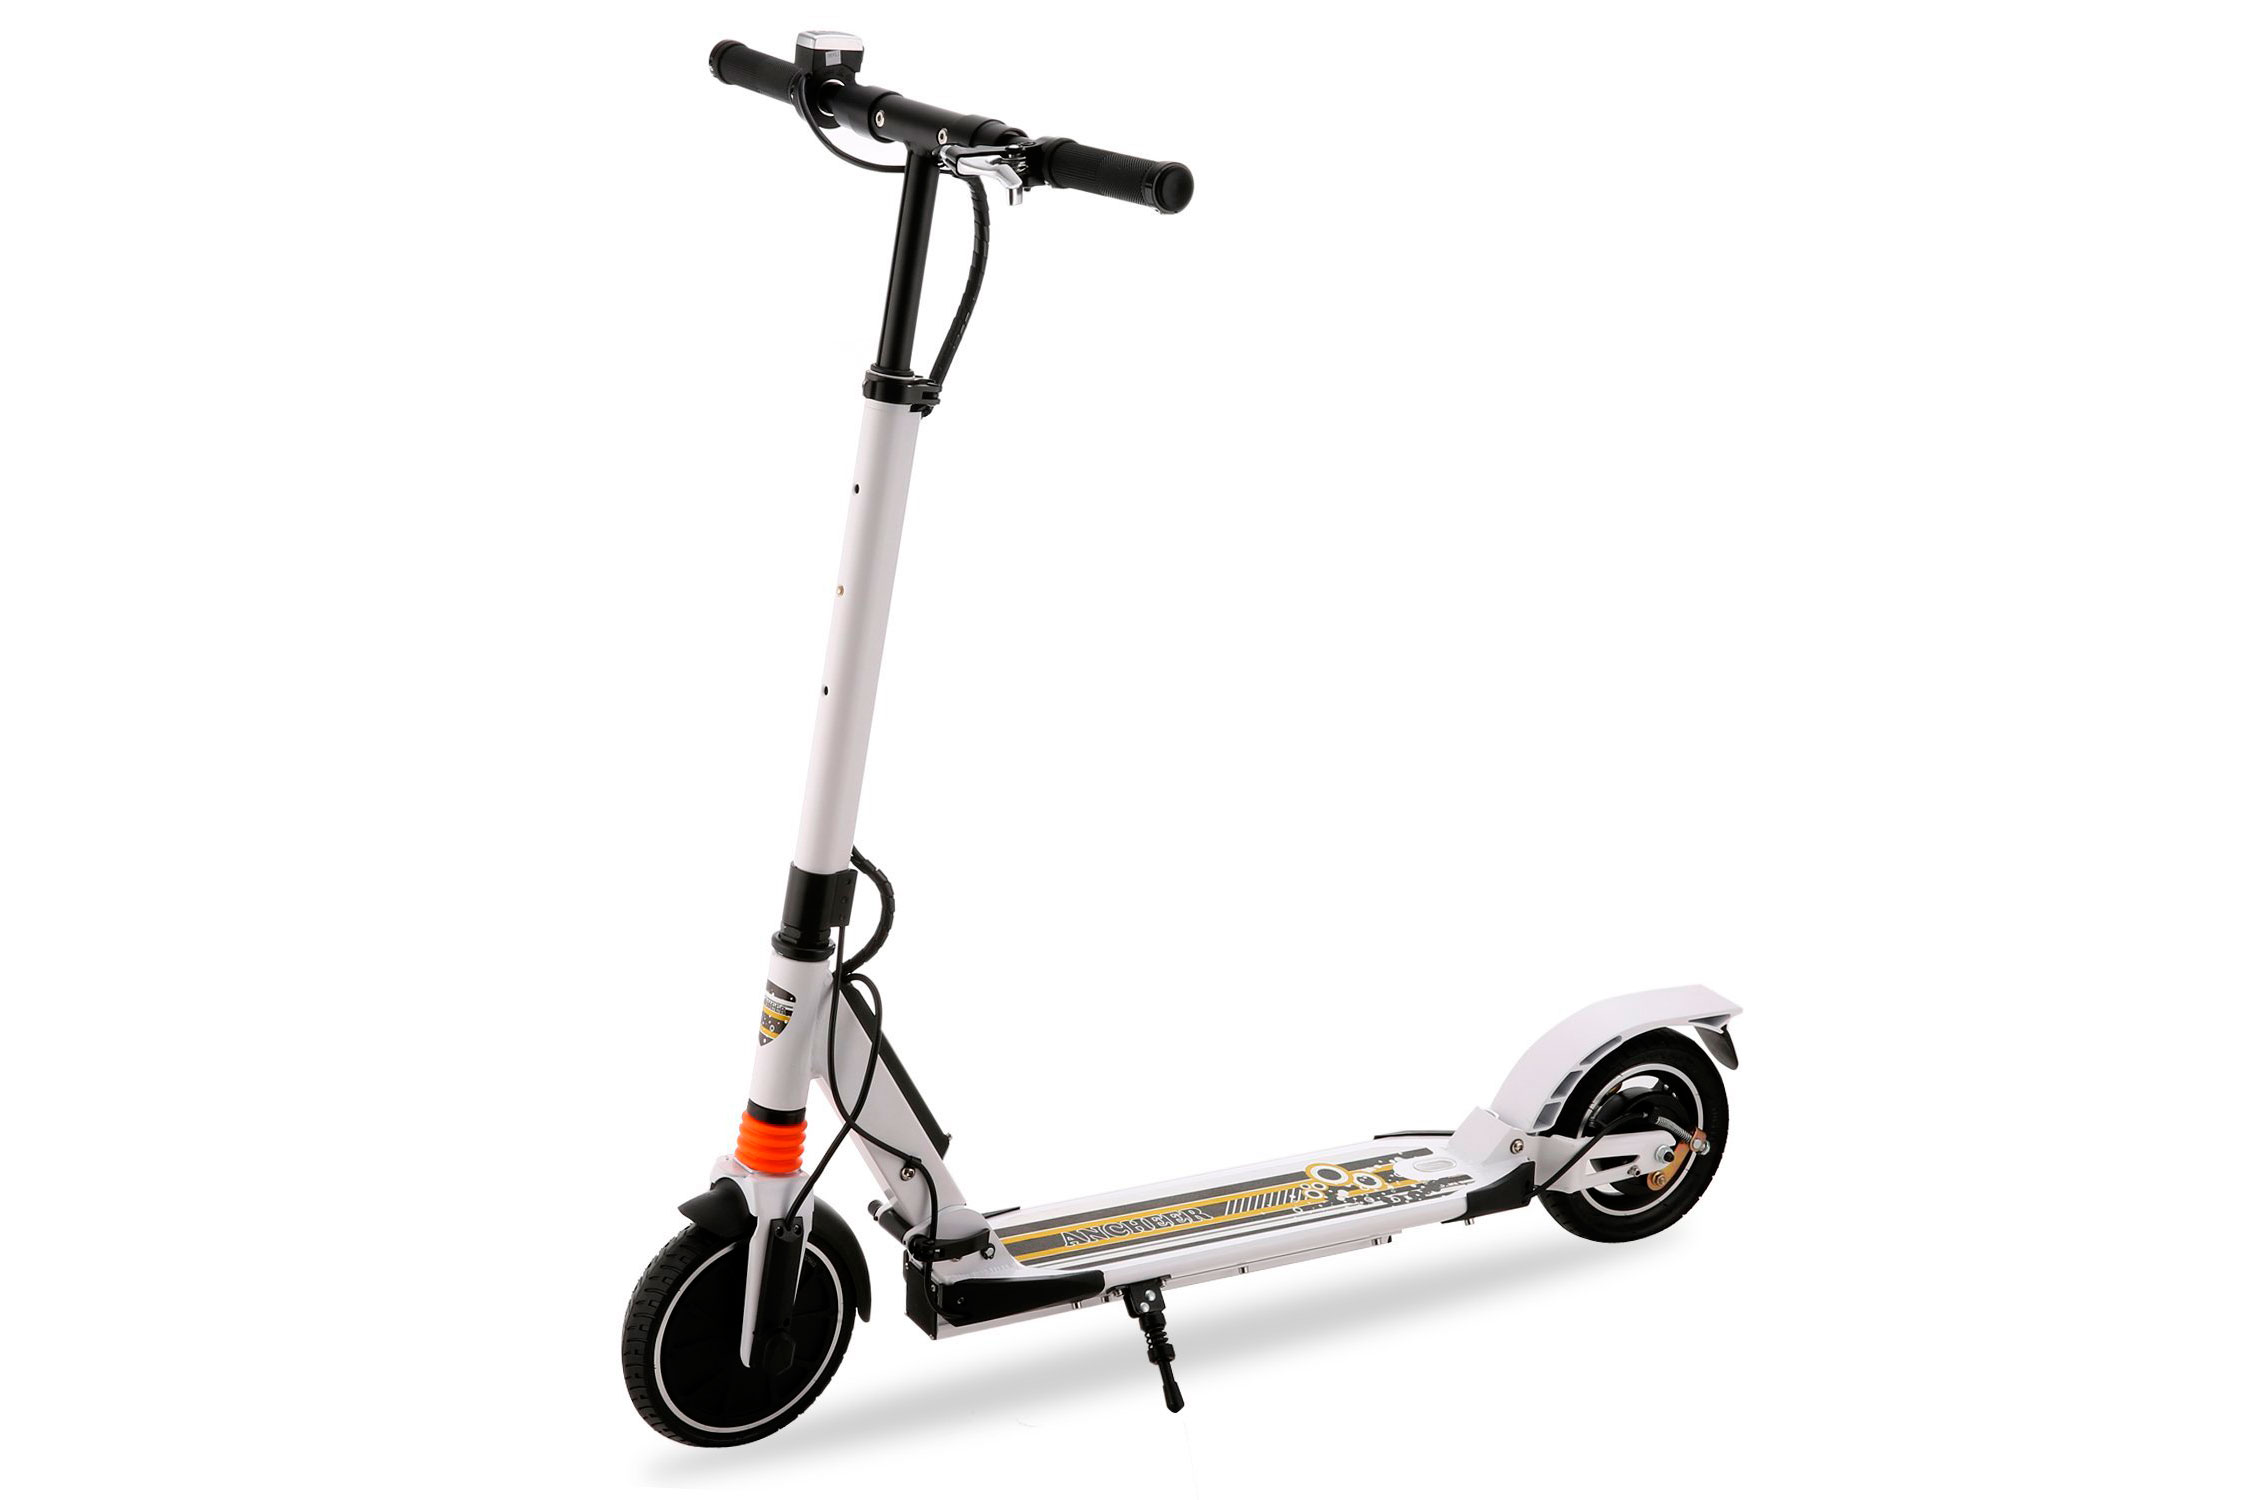 ancheer s600 electric scooter